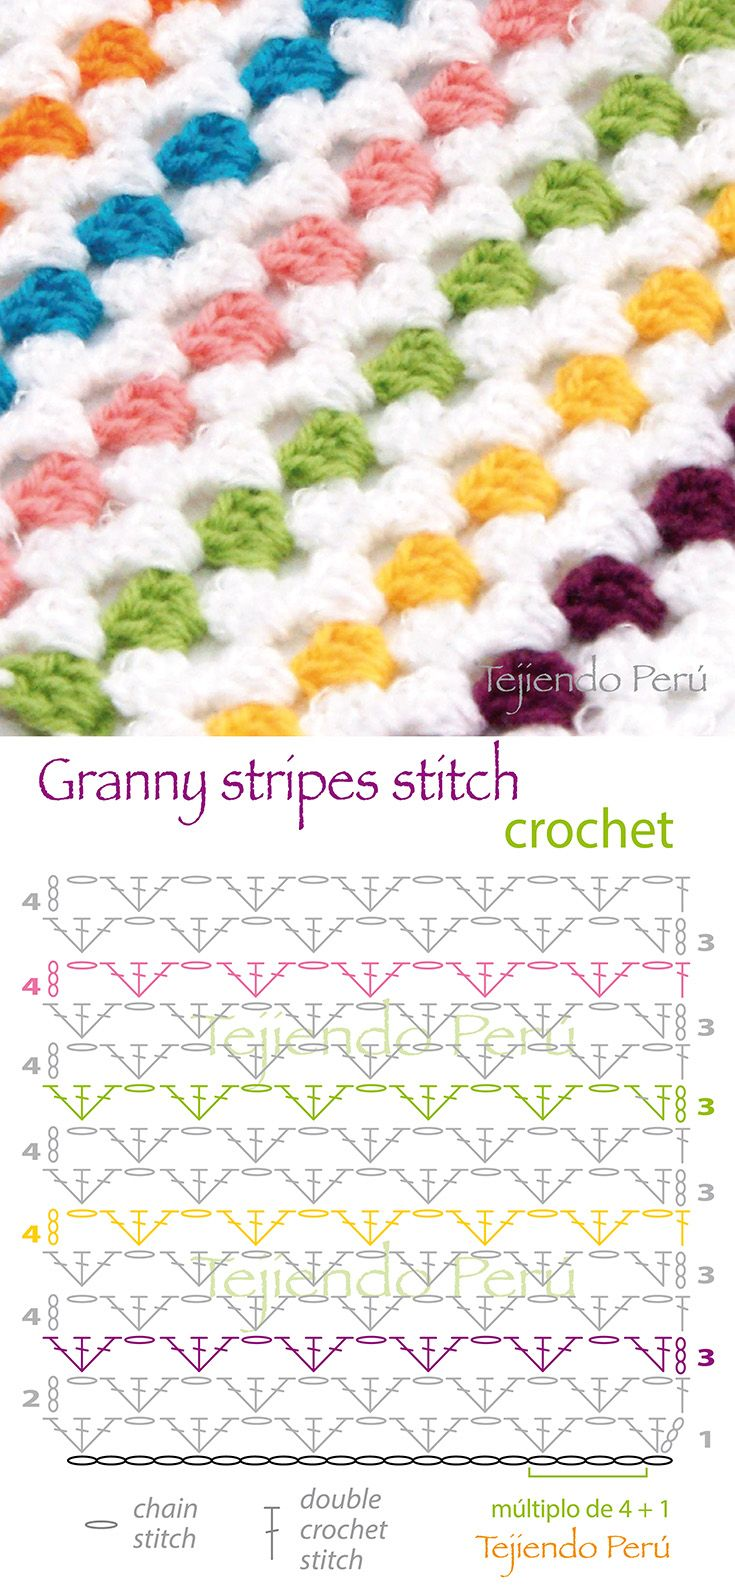 Crochet granny stripes stitch diagram! (Pattern or chart)